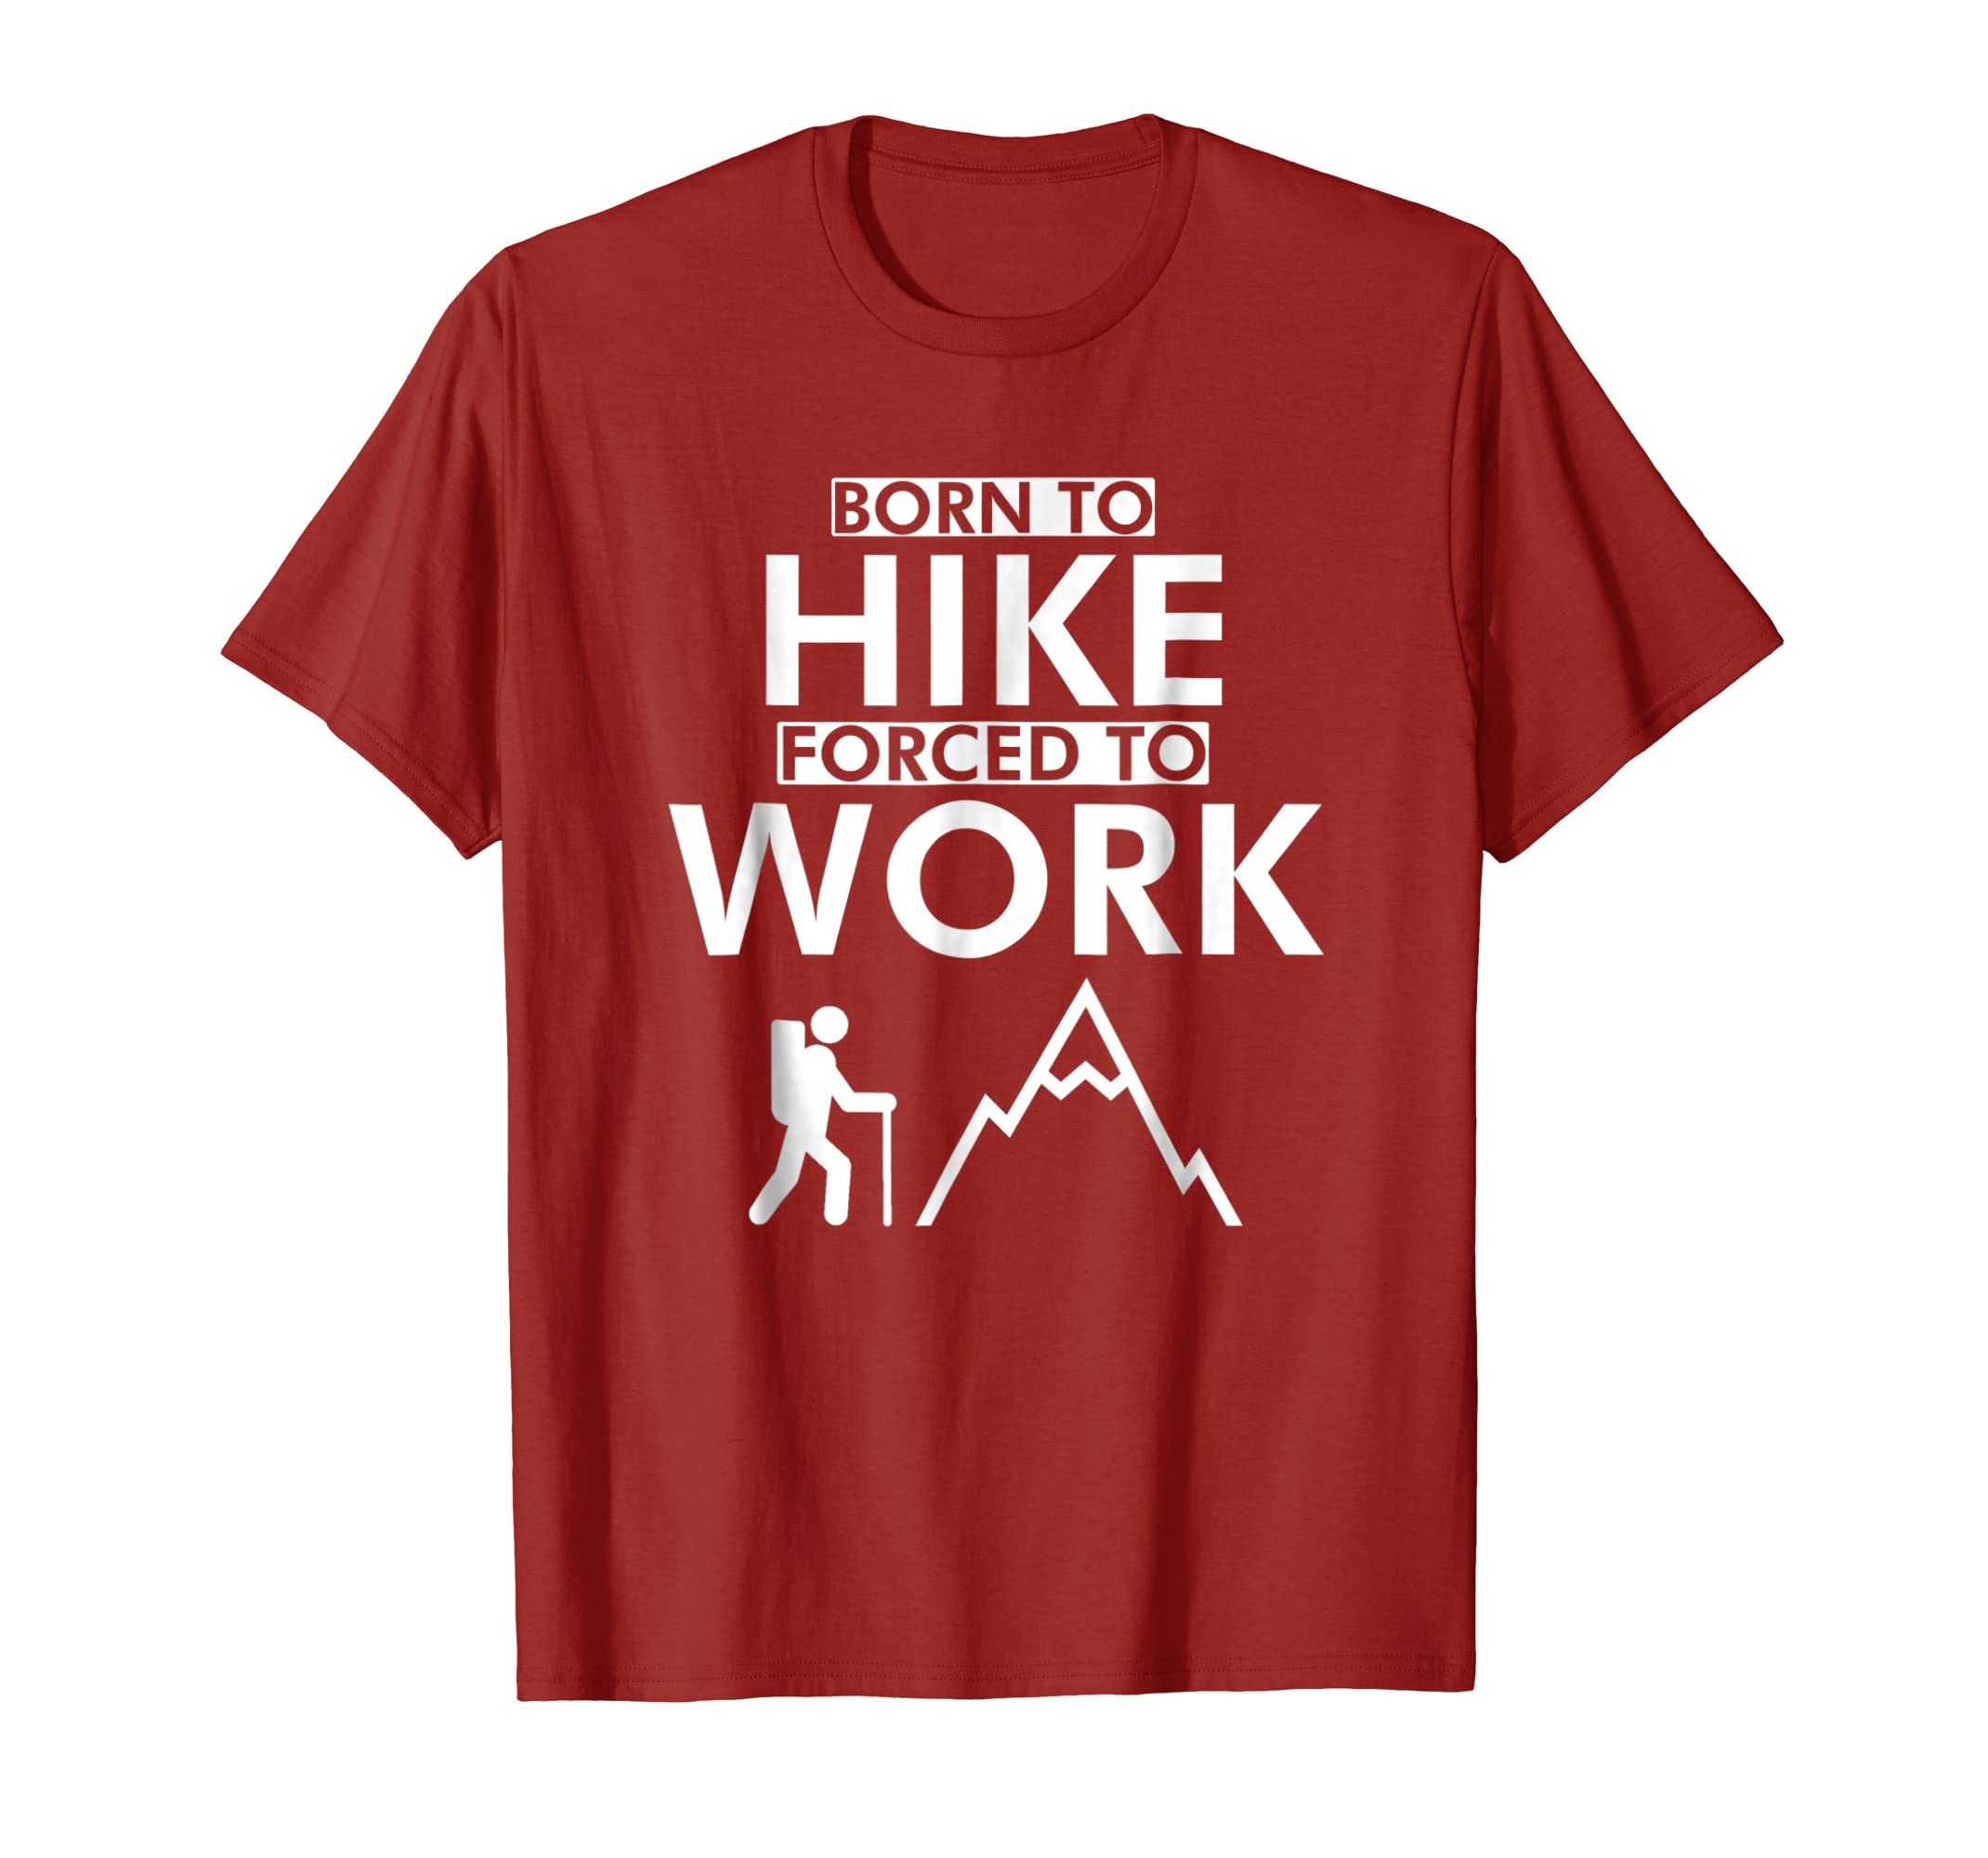 born to hike forced to work hiking t shirts men women-Teechatpro